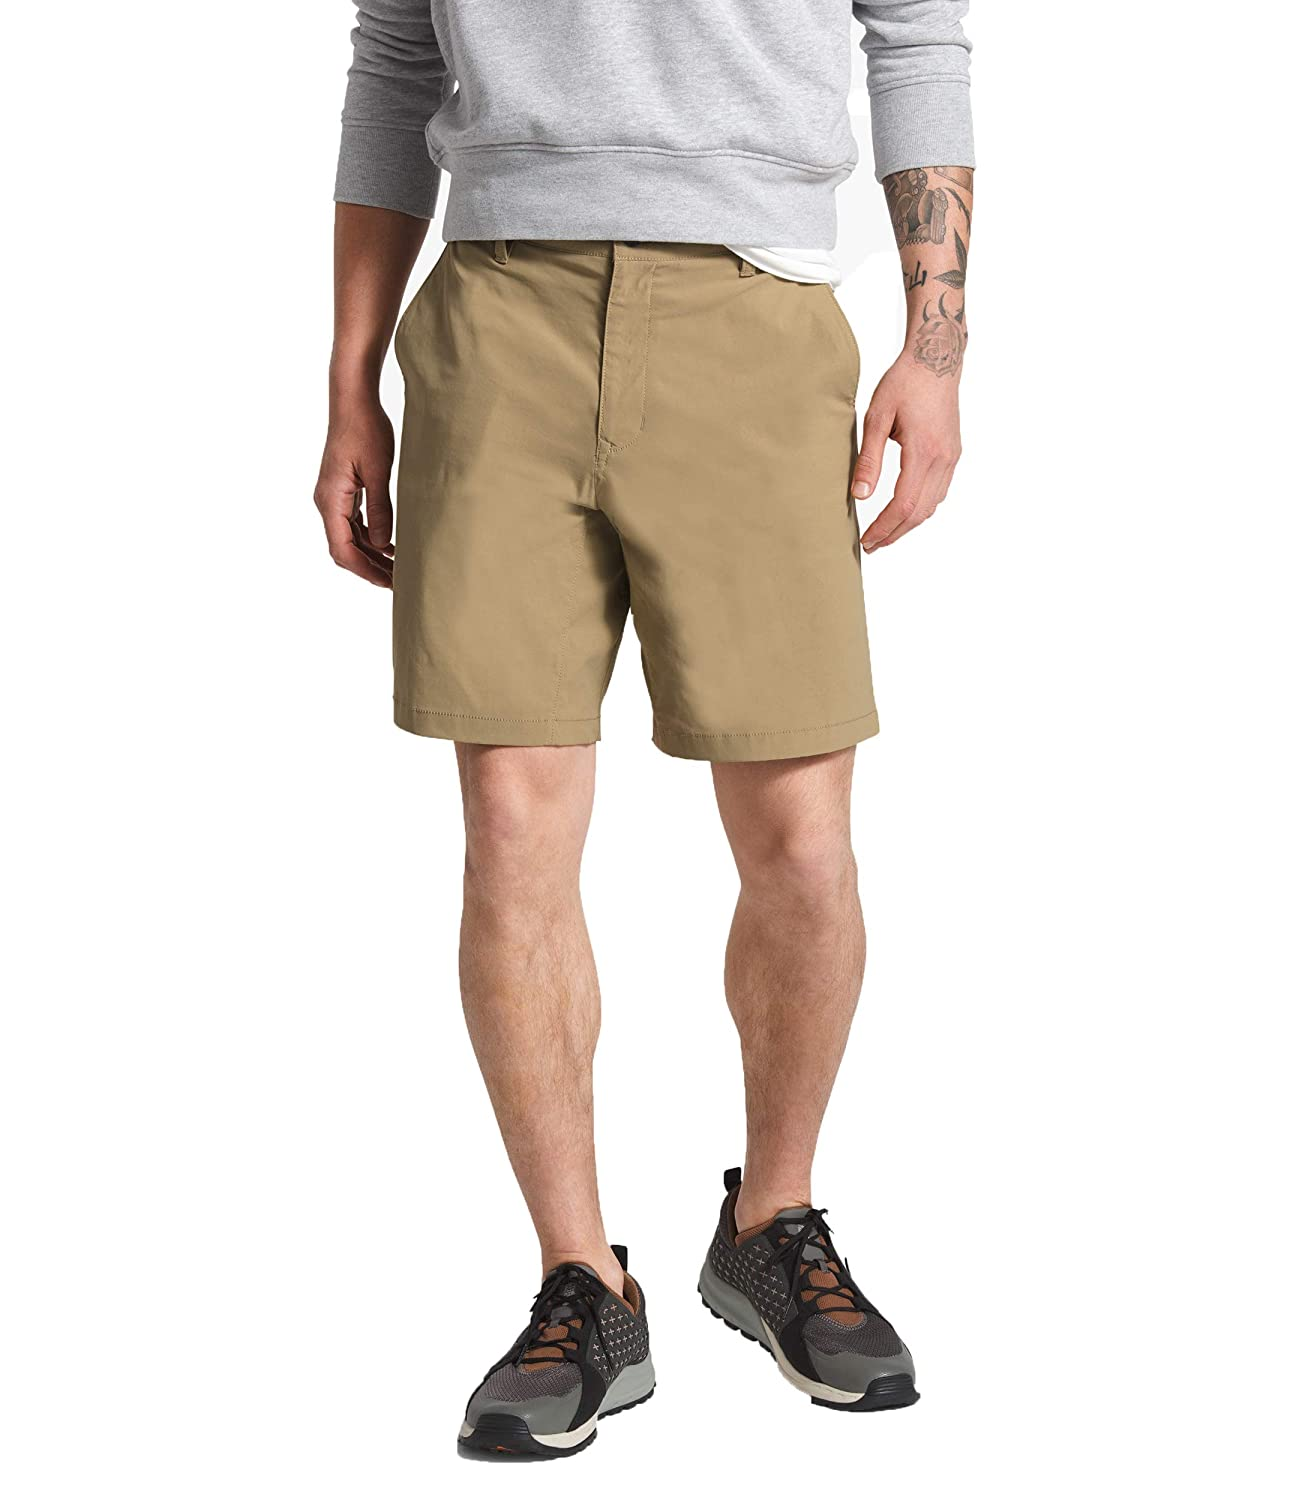 b5d717dd84 Amazon.com: The North Face Men's Sprag Short: Clothing